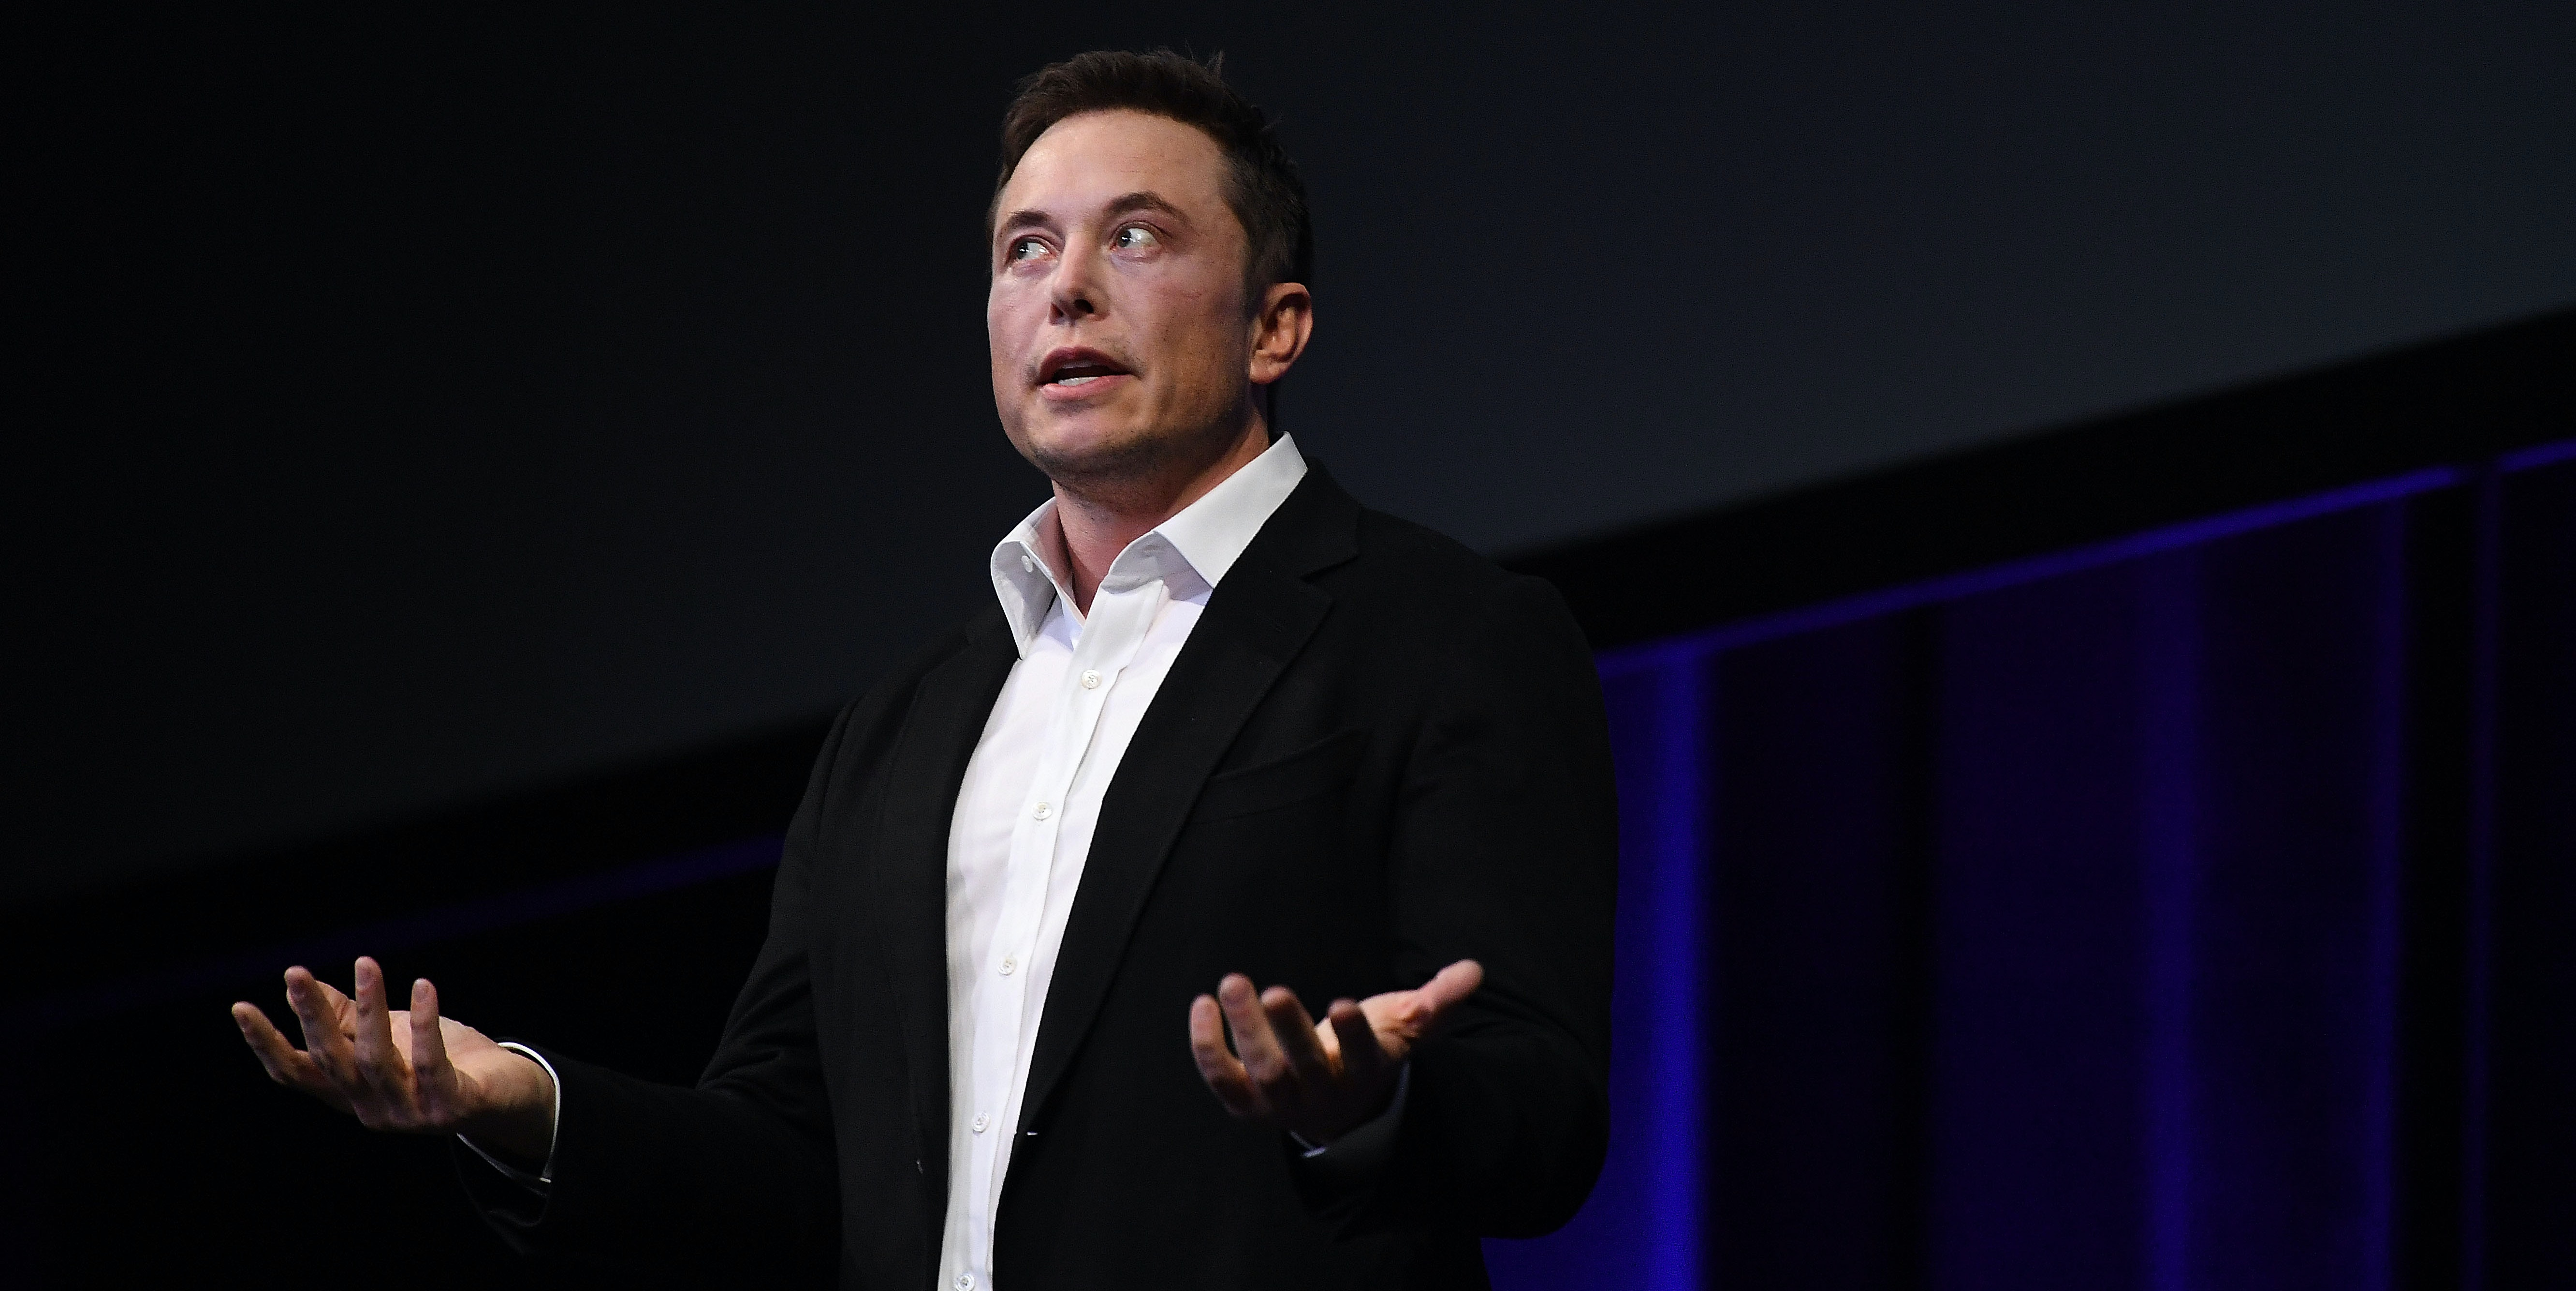 lawler senior singles Elon musk sent an email in may that the blog post drew ire from richard lawler, a senior news there has never been a single proven case of.